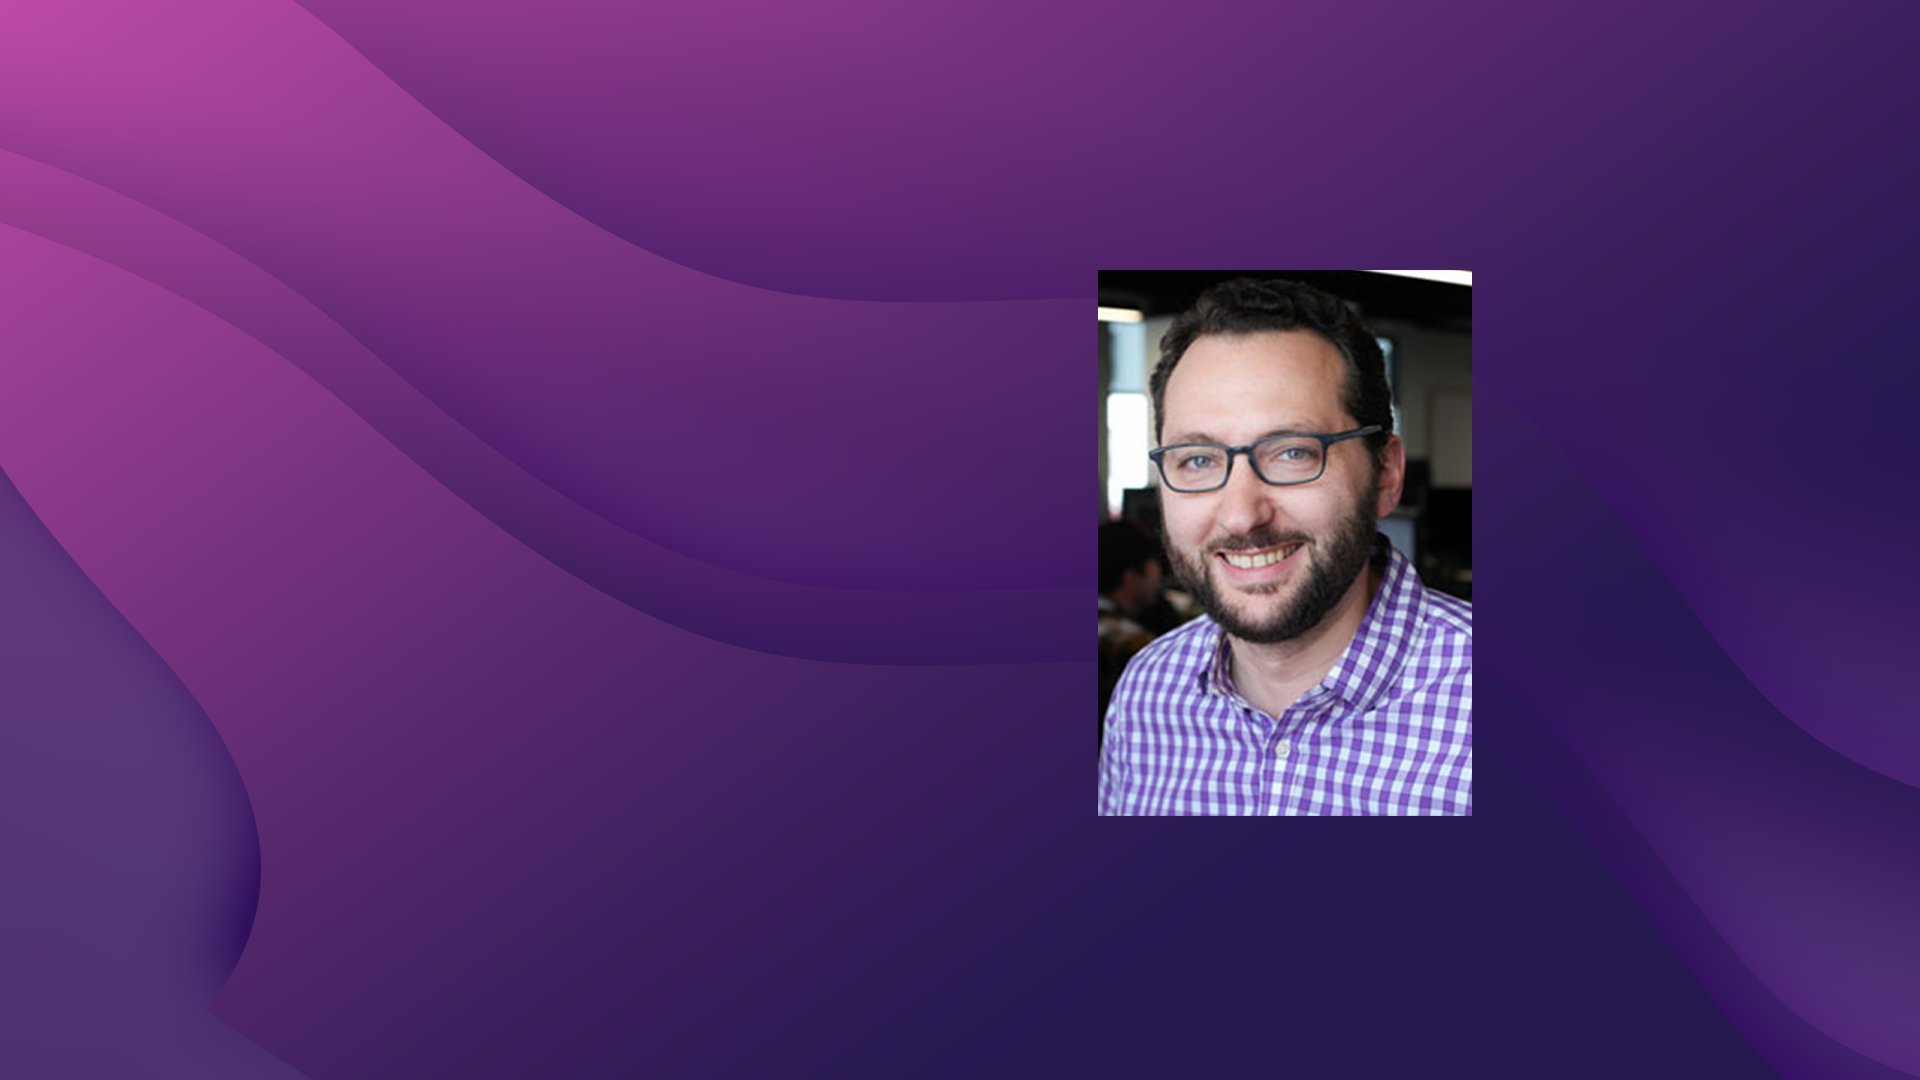 943: Looker – Big Data Analytics And Joining The Google Cloud Family